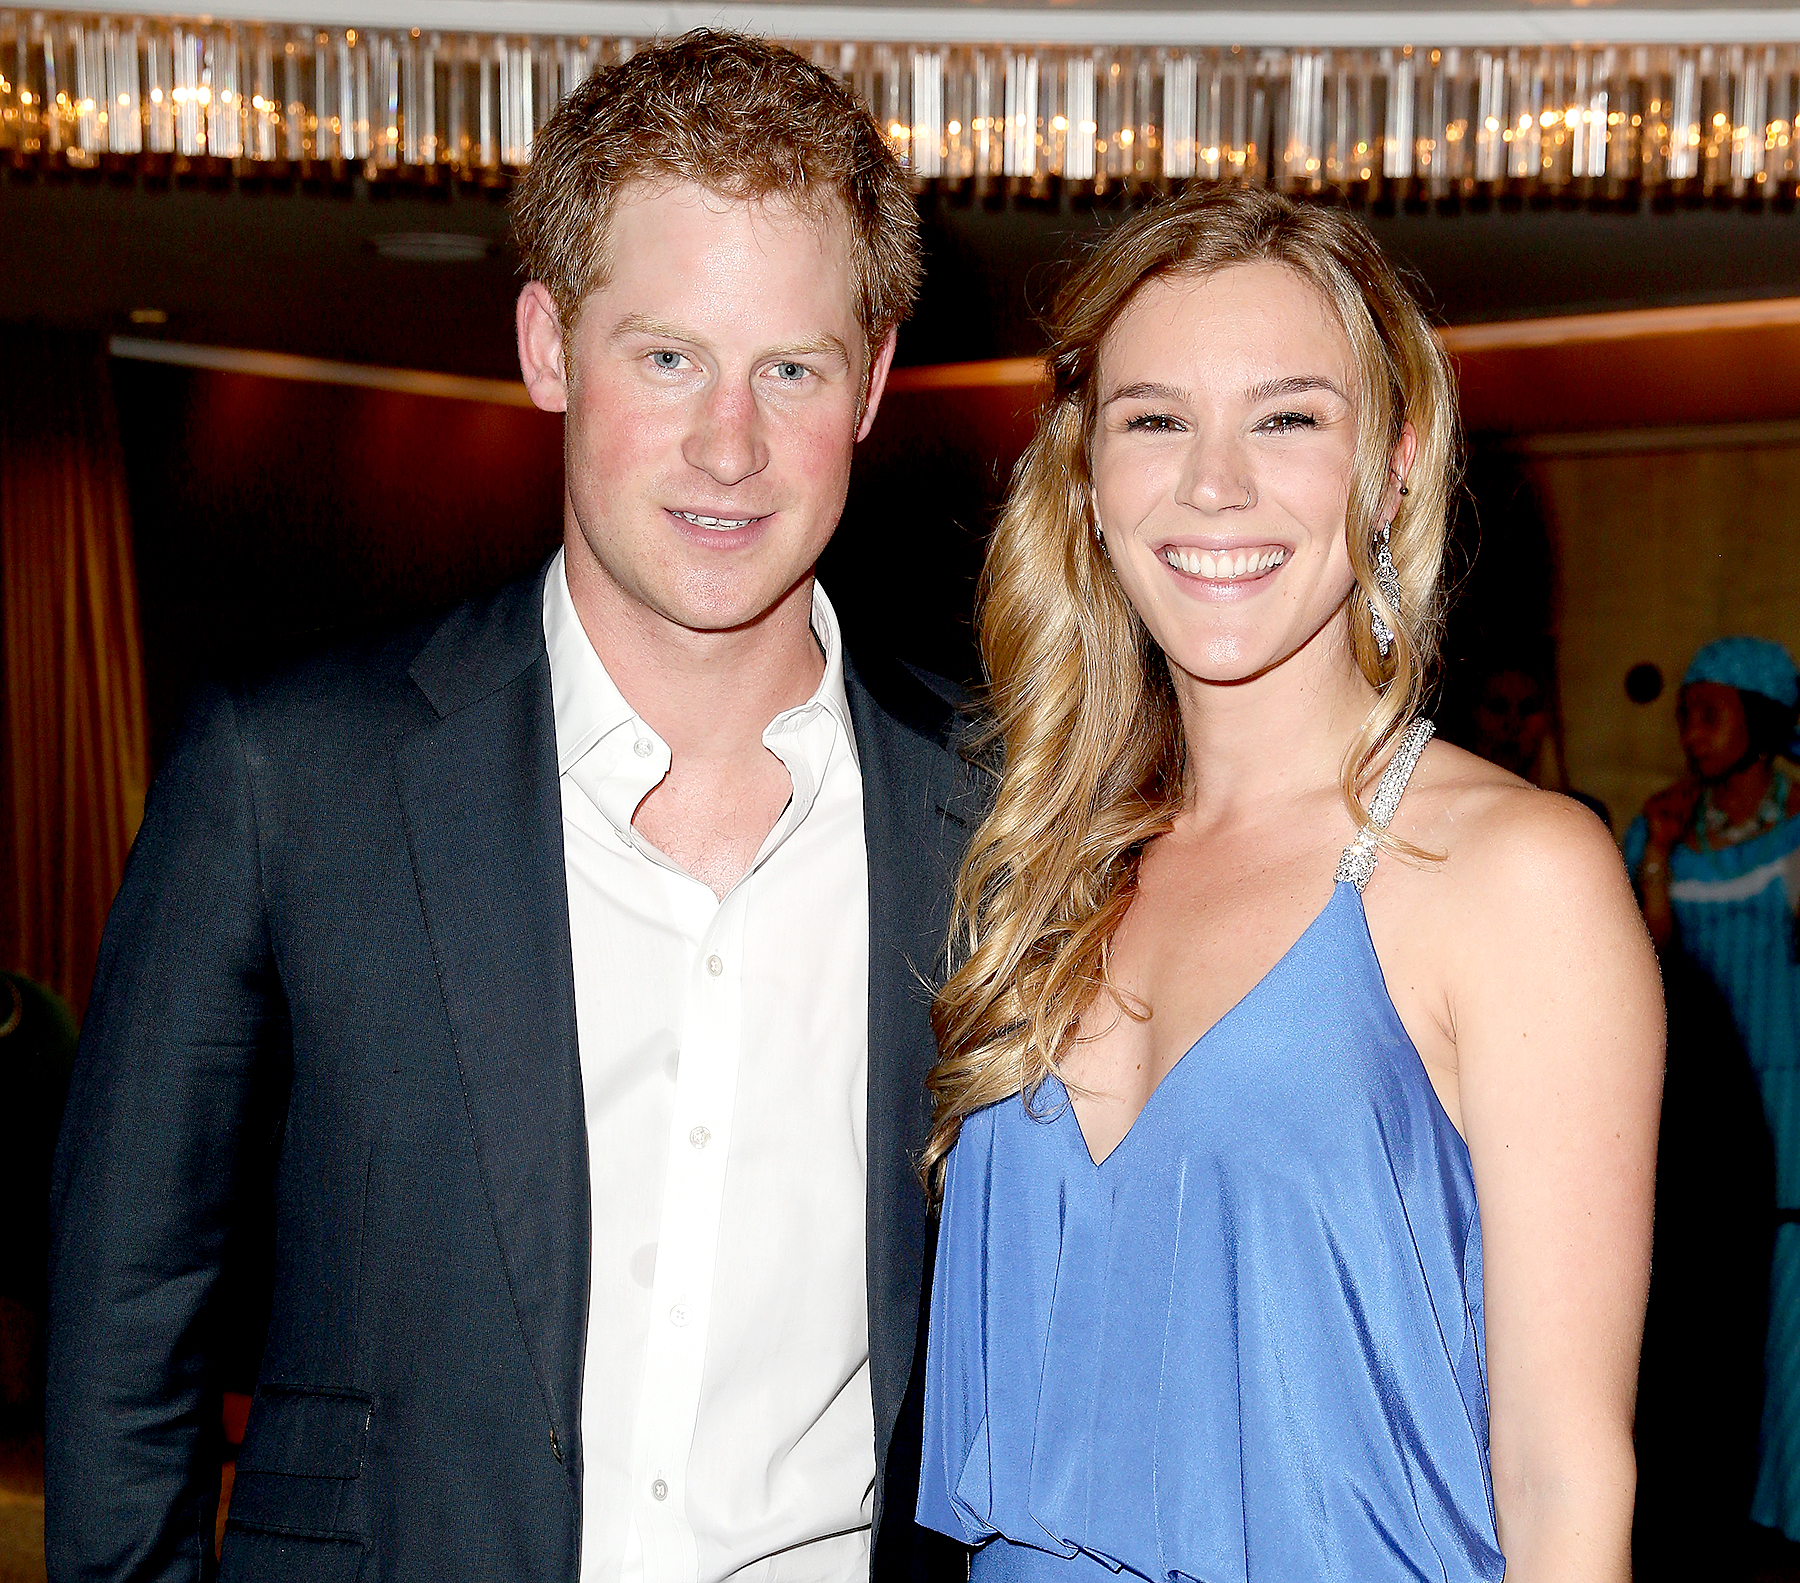 Joss stone and prince harry dating show